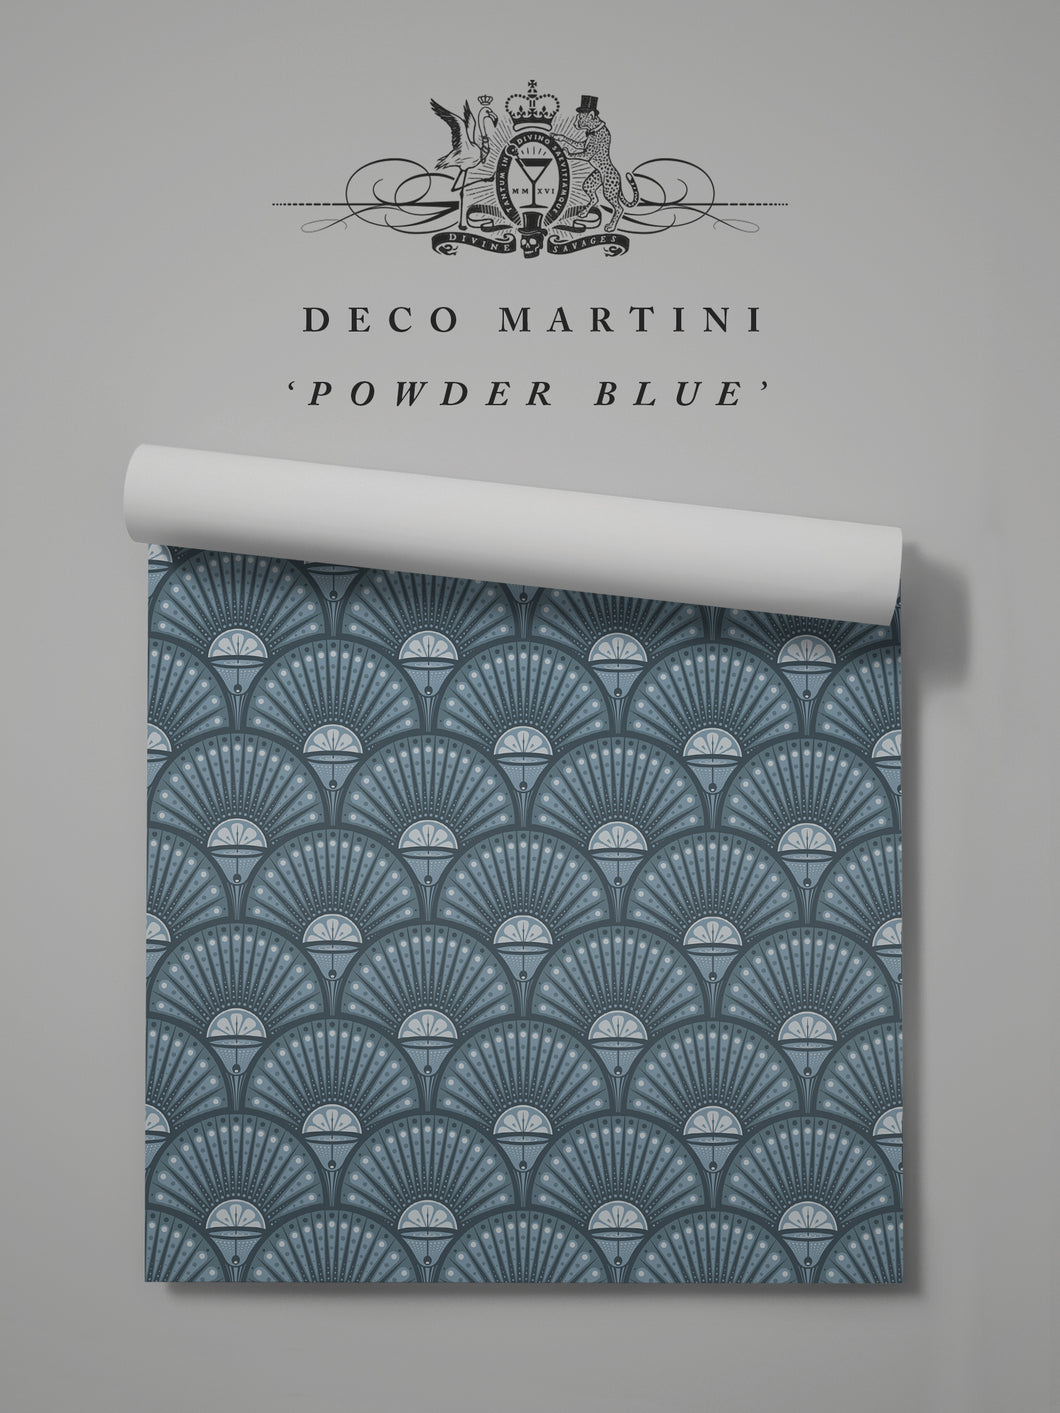 Deco Martini 'Powder Blue' Sample